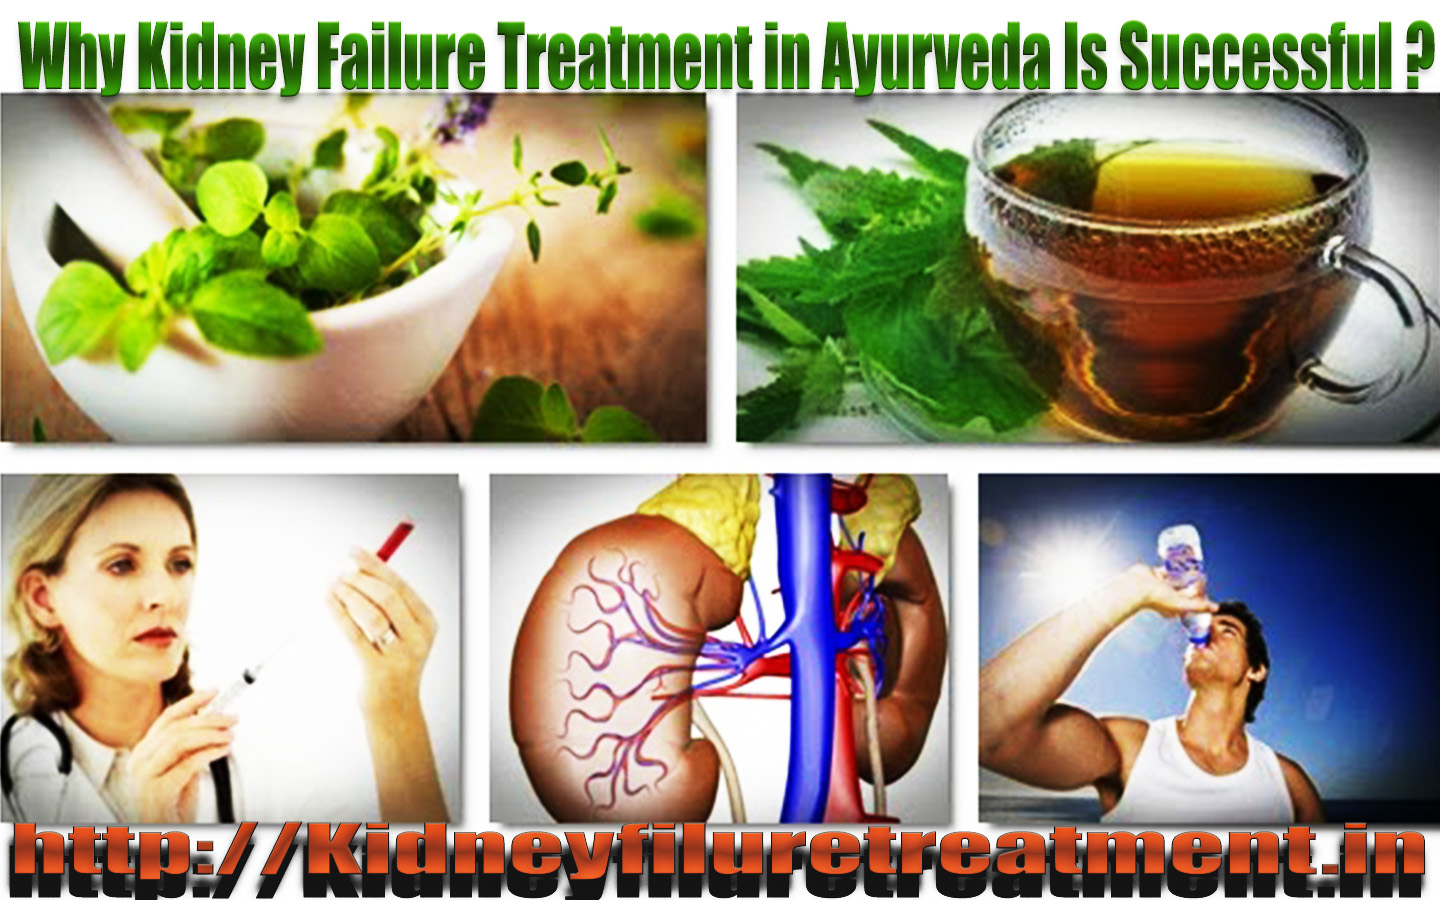 Why Kidney Failure Treatment in Ayurveda Is Successful